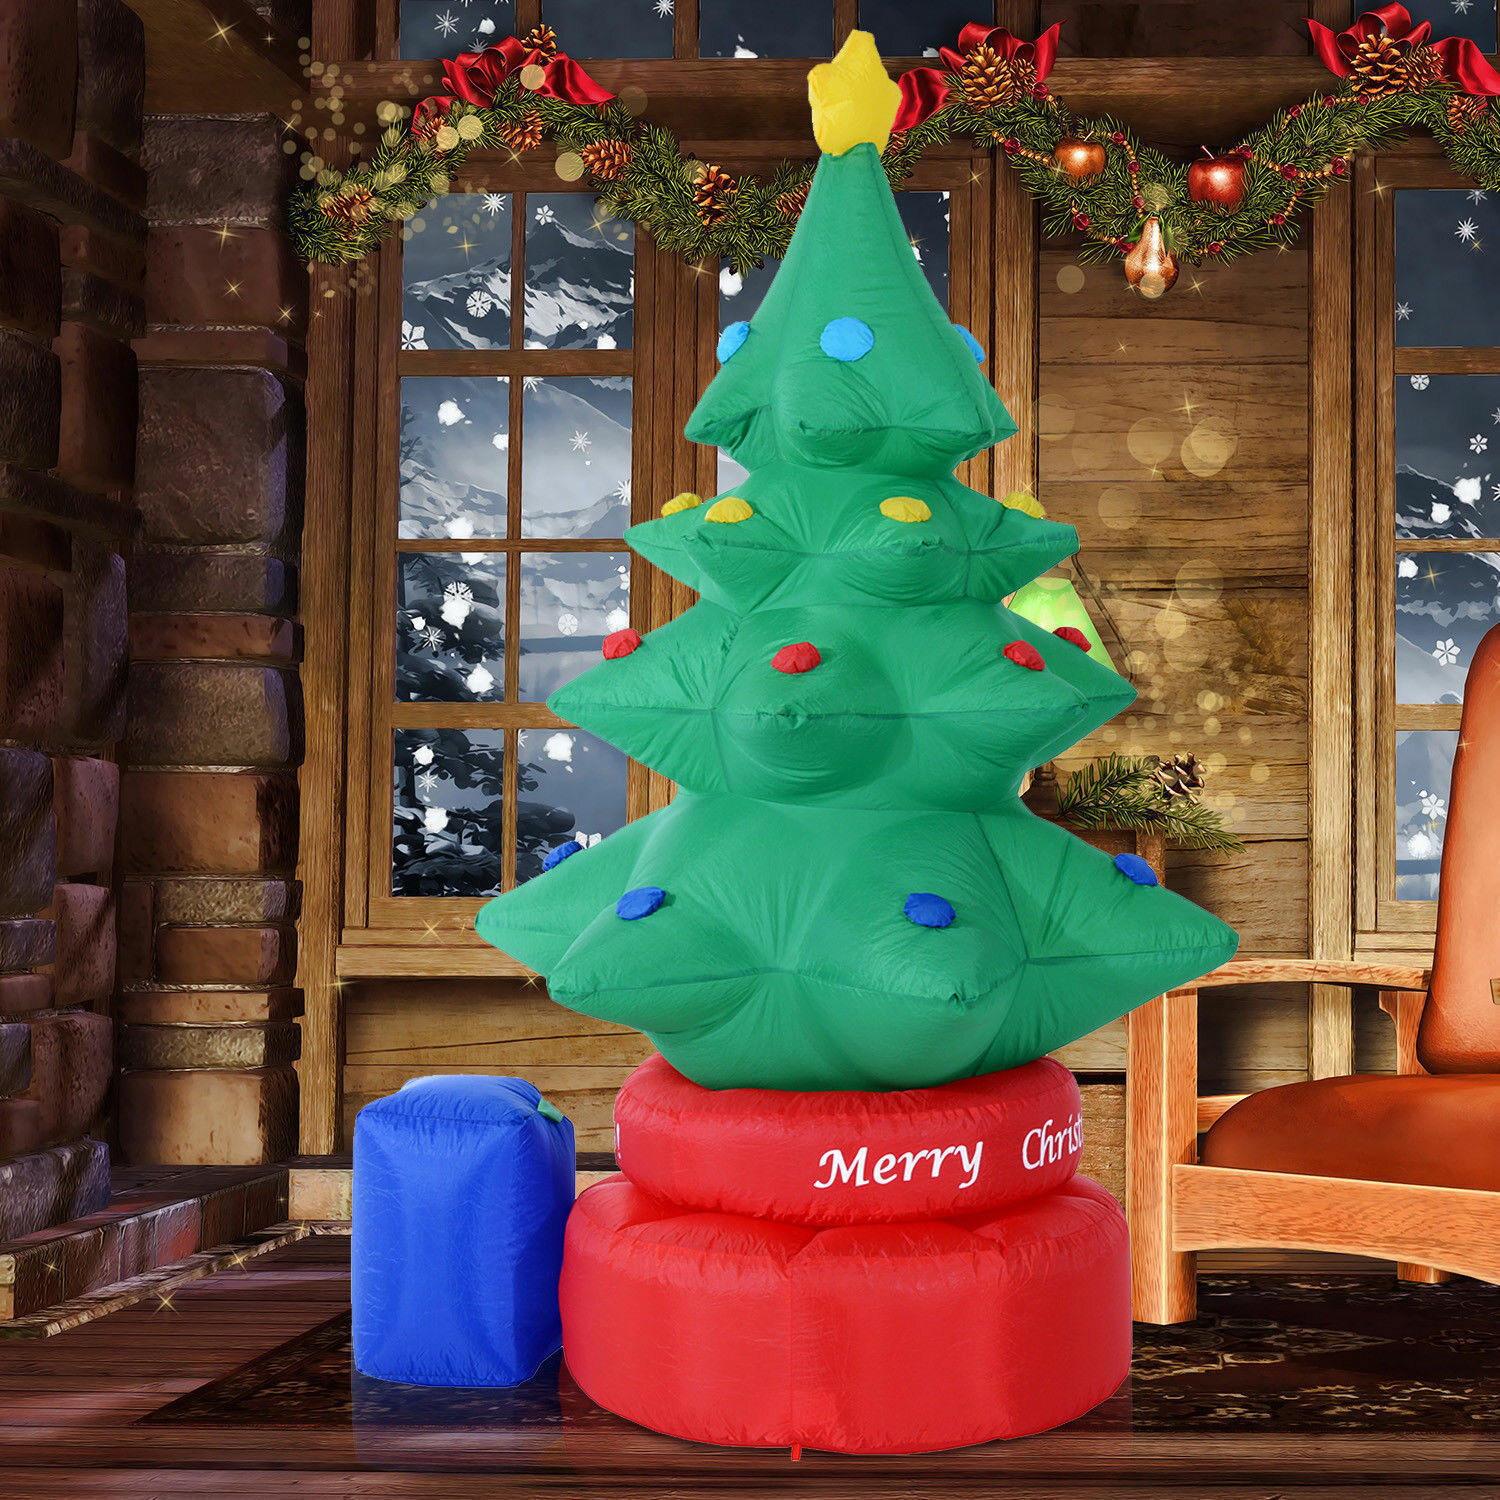 Christmas Tree Inflatable.Rotating Animated Christmas Tree Led Lighted Outdoor Air Blown Inflatable